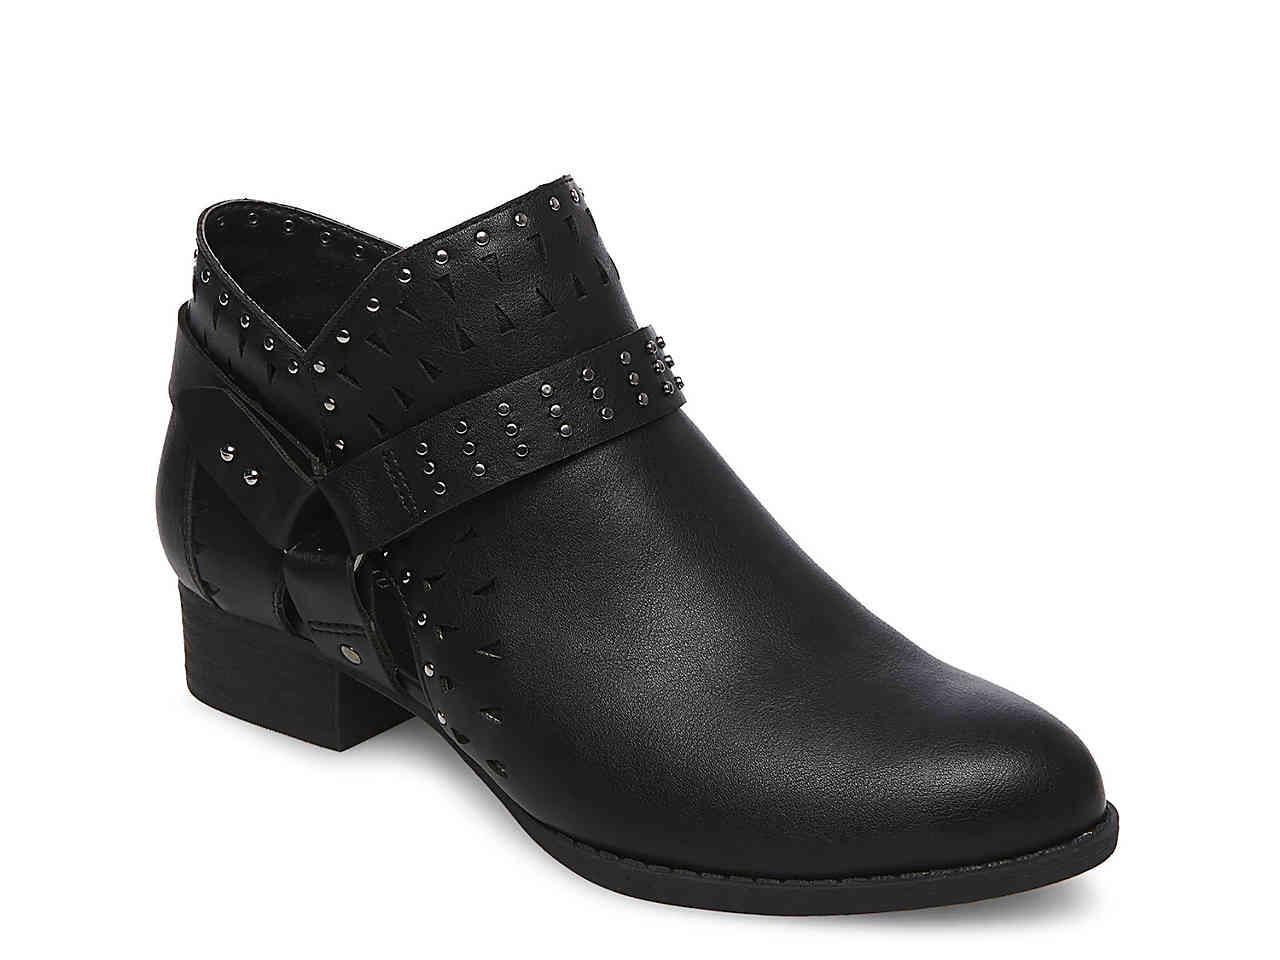 Madden Girl Ariizona Studded Ankle Bootie